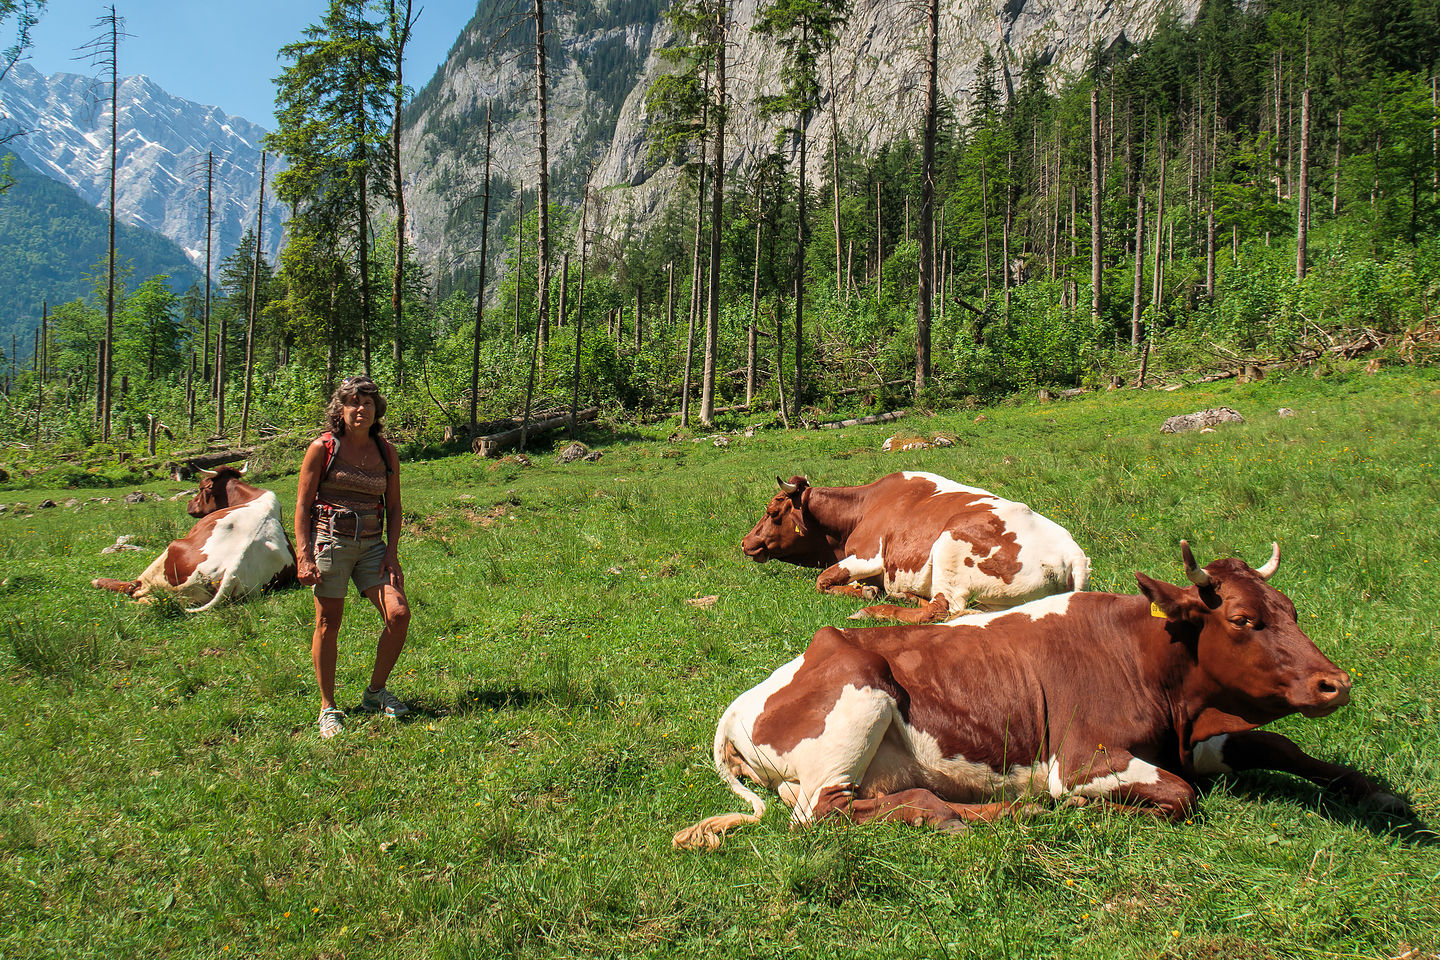 The cows of the Konigsee